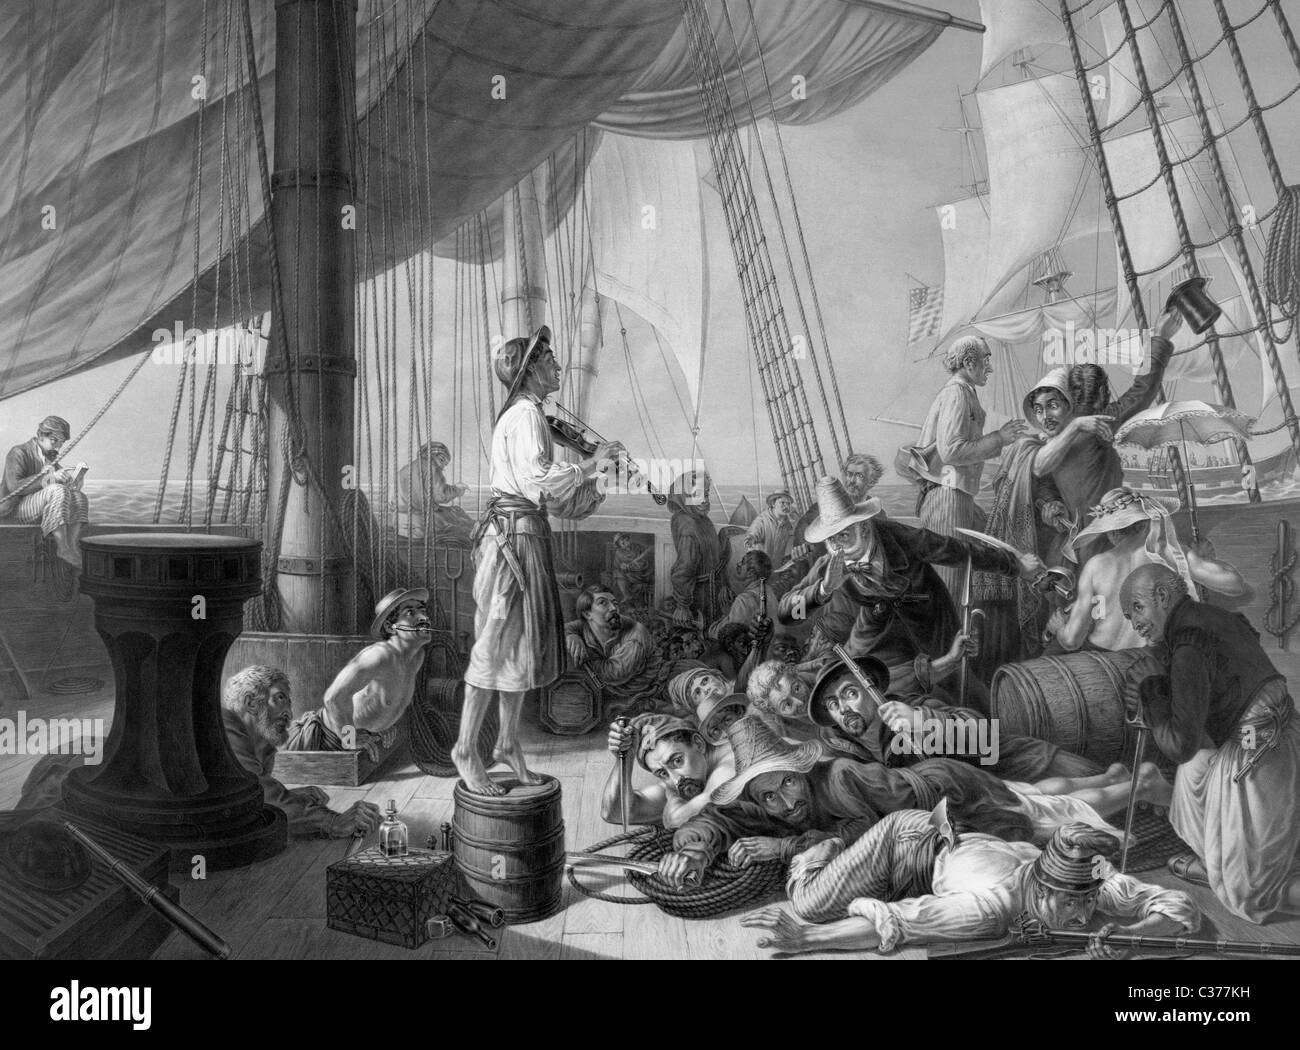 The pirates' ruse luring a merchantman in the olden days - Print demonstrating Pirates getting a merchant vessel - Stock Image